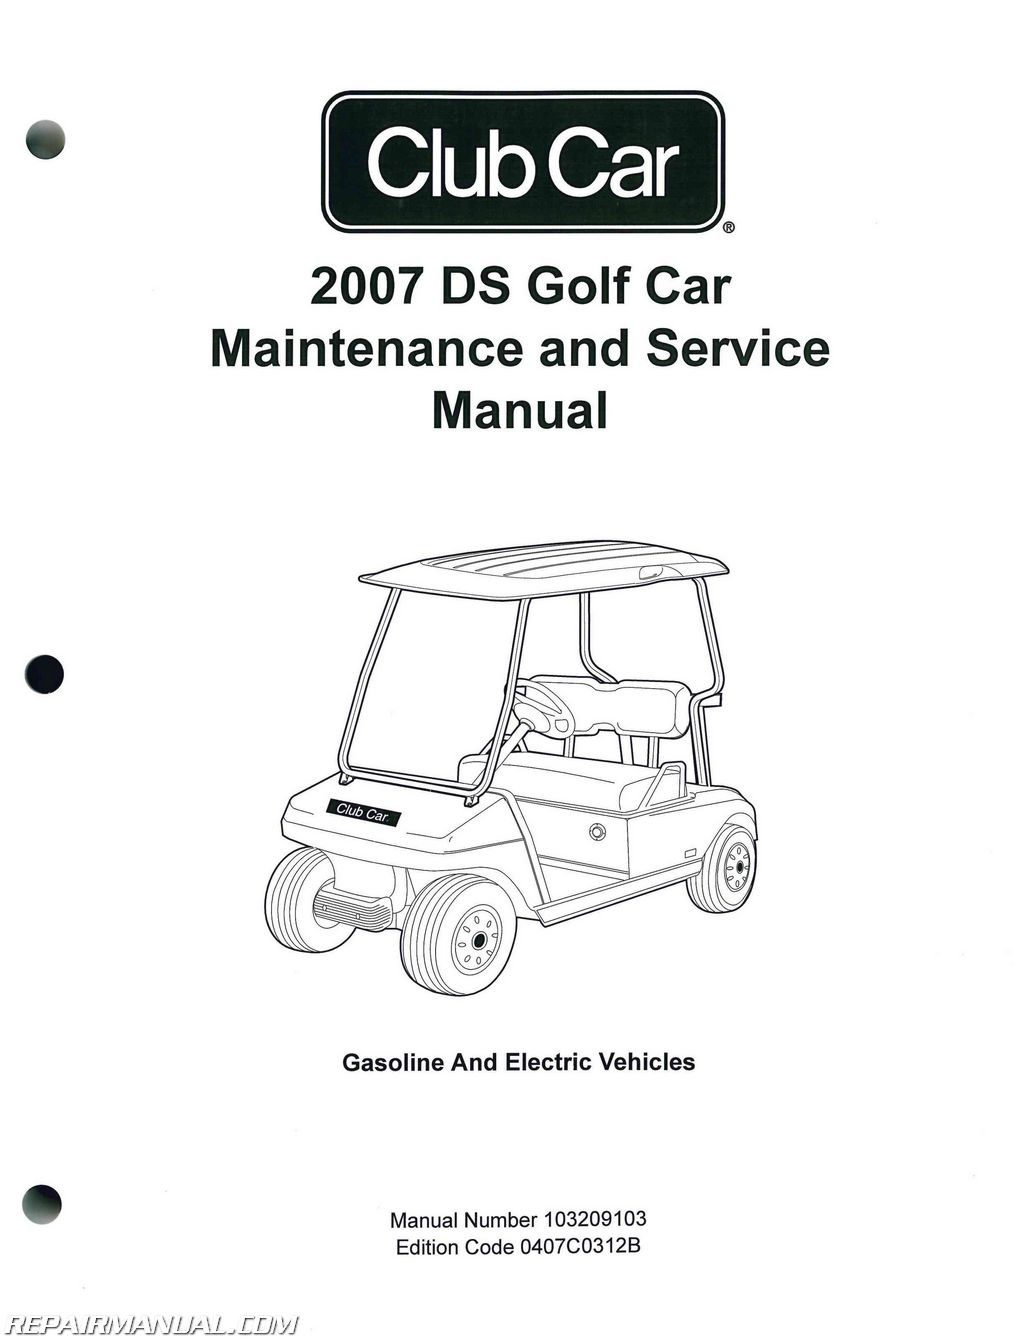 golf car wiring diagram manual wiring diagram \u2022 1991 club car golf cart wiring diagram 2007 club car ds golf car gas and electric golf cart service manual rh repairmanual com 99 club car wiring diagram electric club car wiring diagram